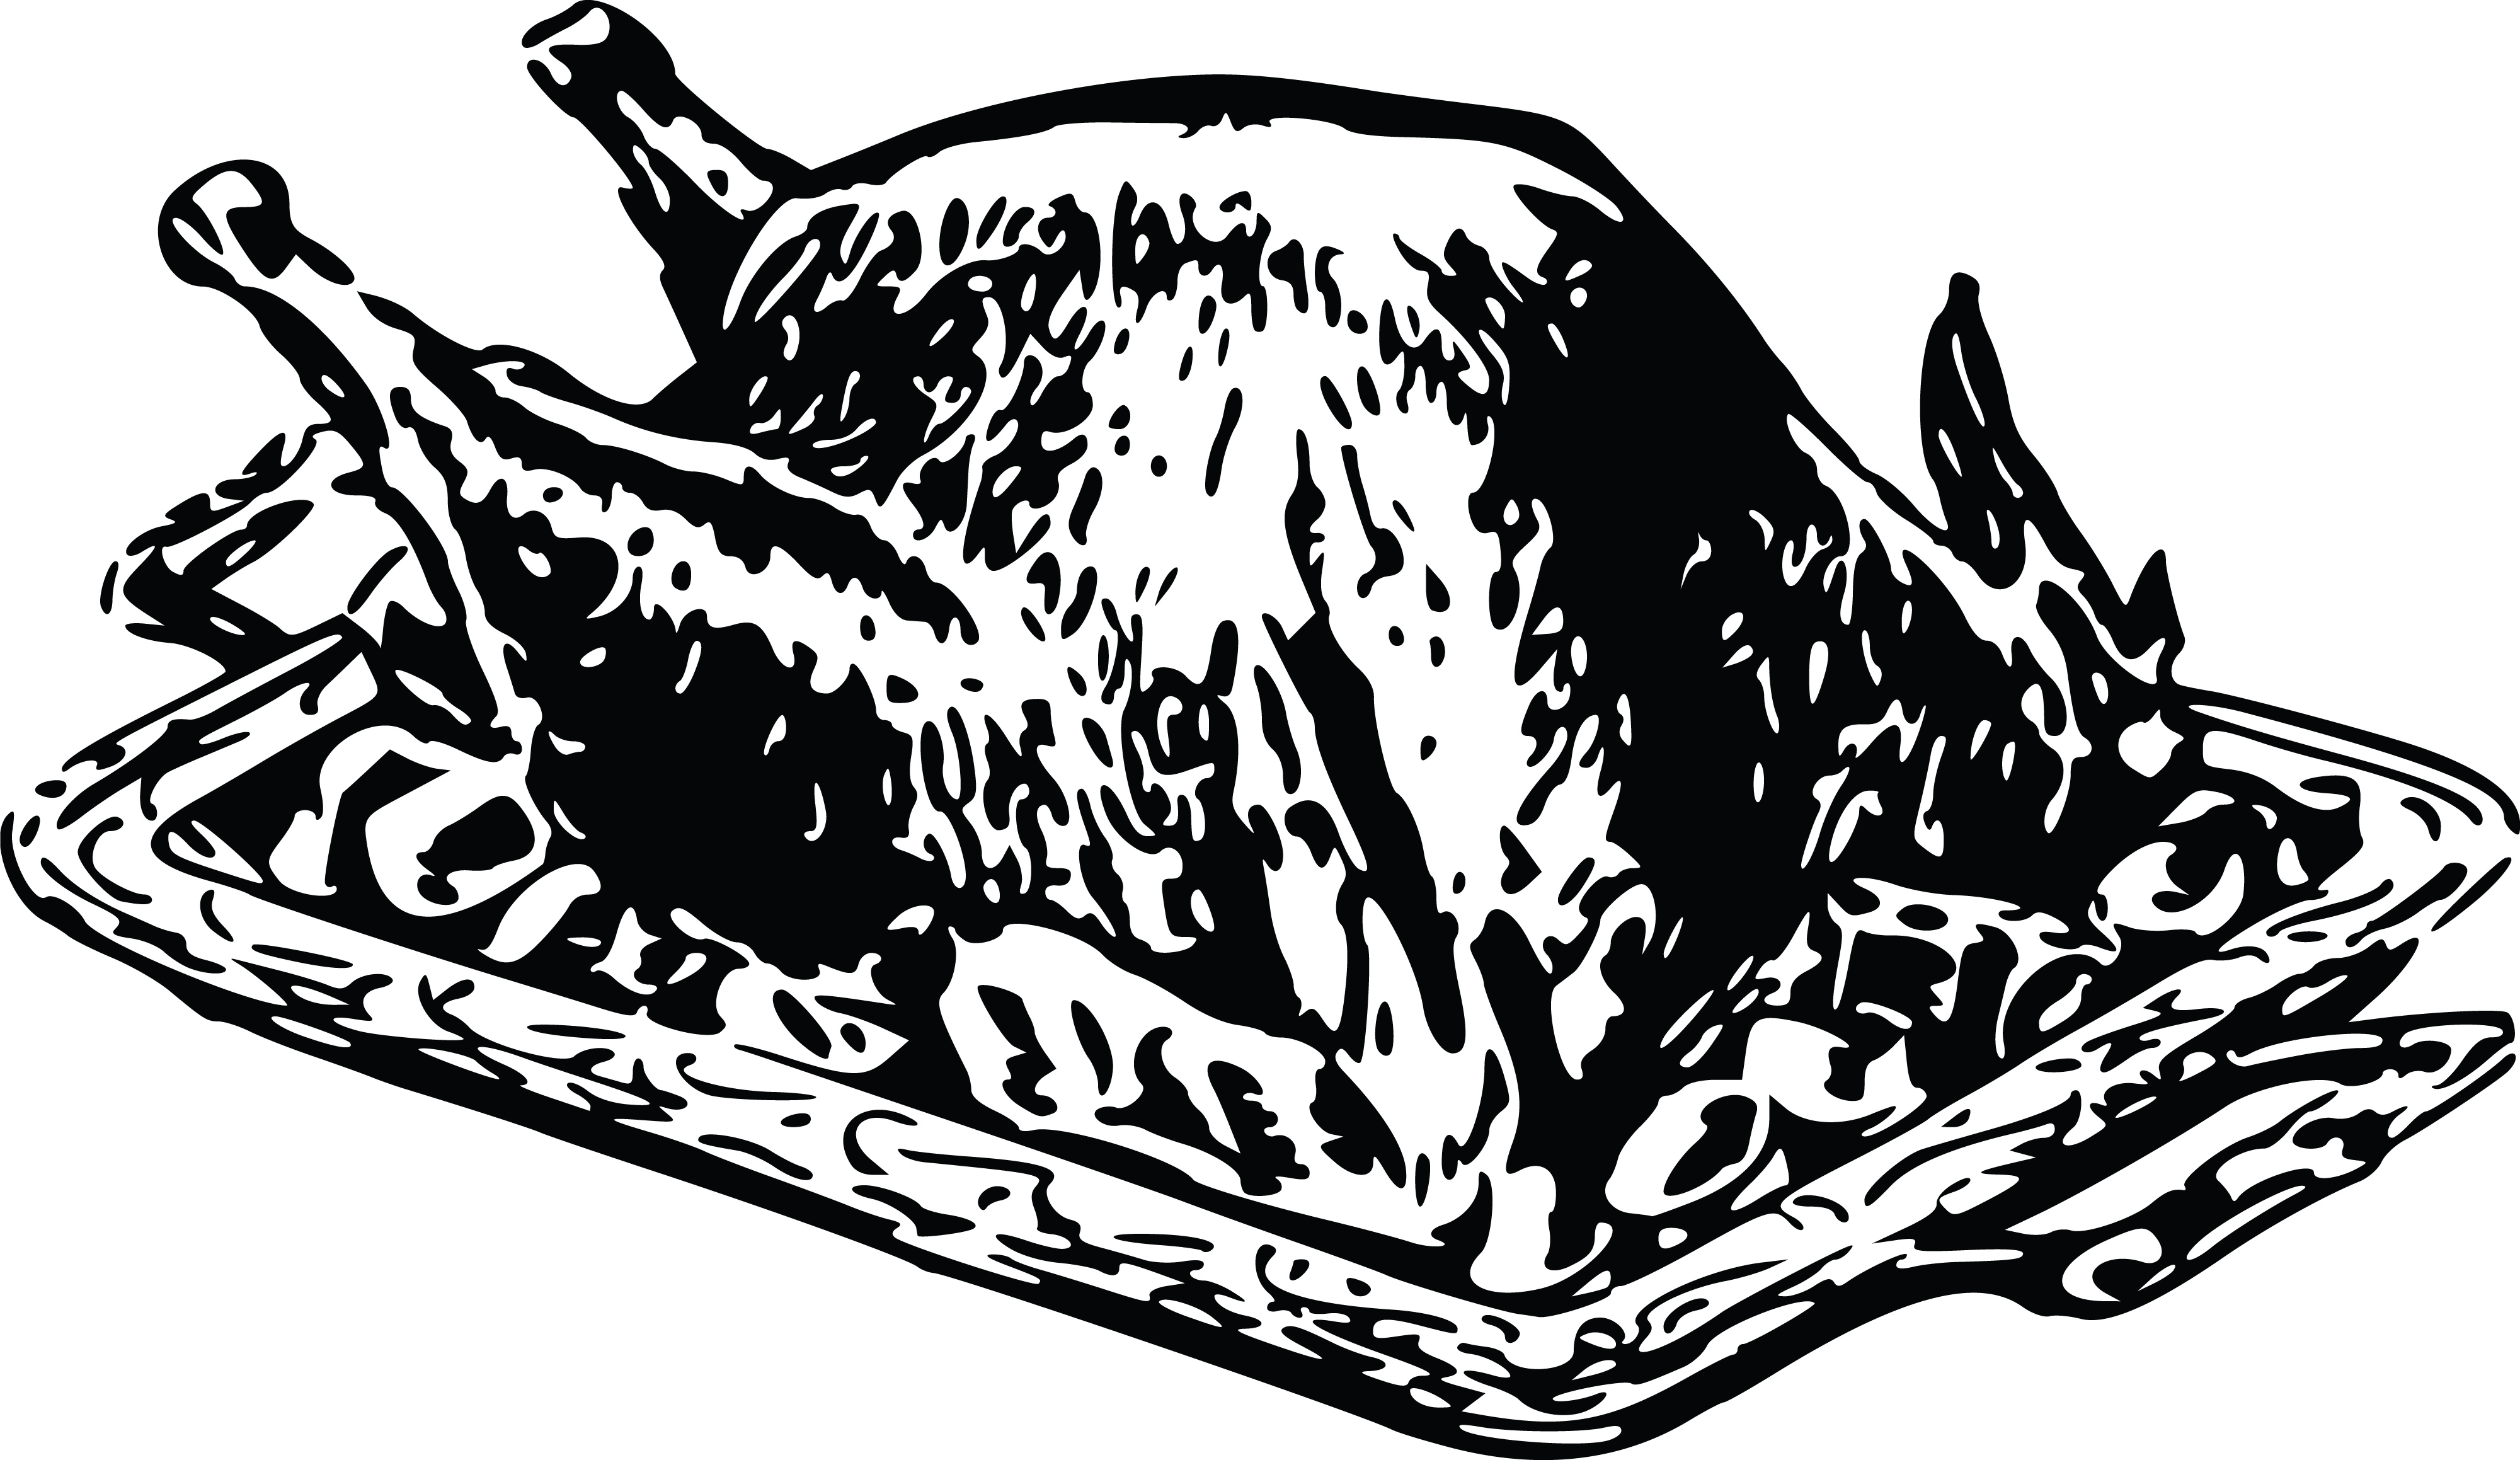 Free Clipart Of A roasted turkey.